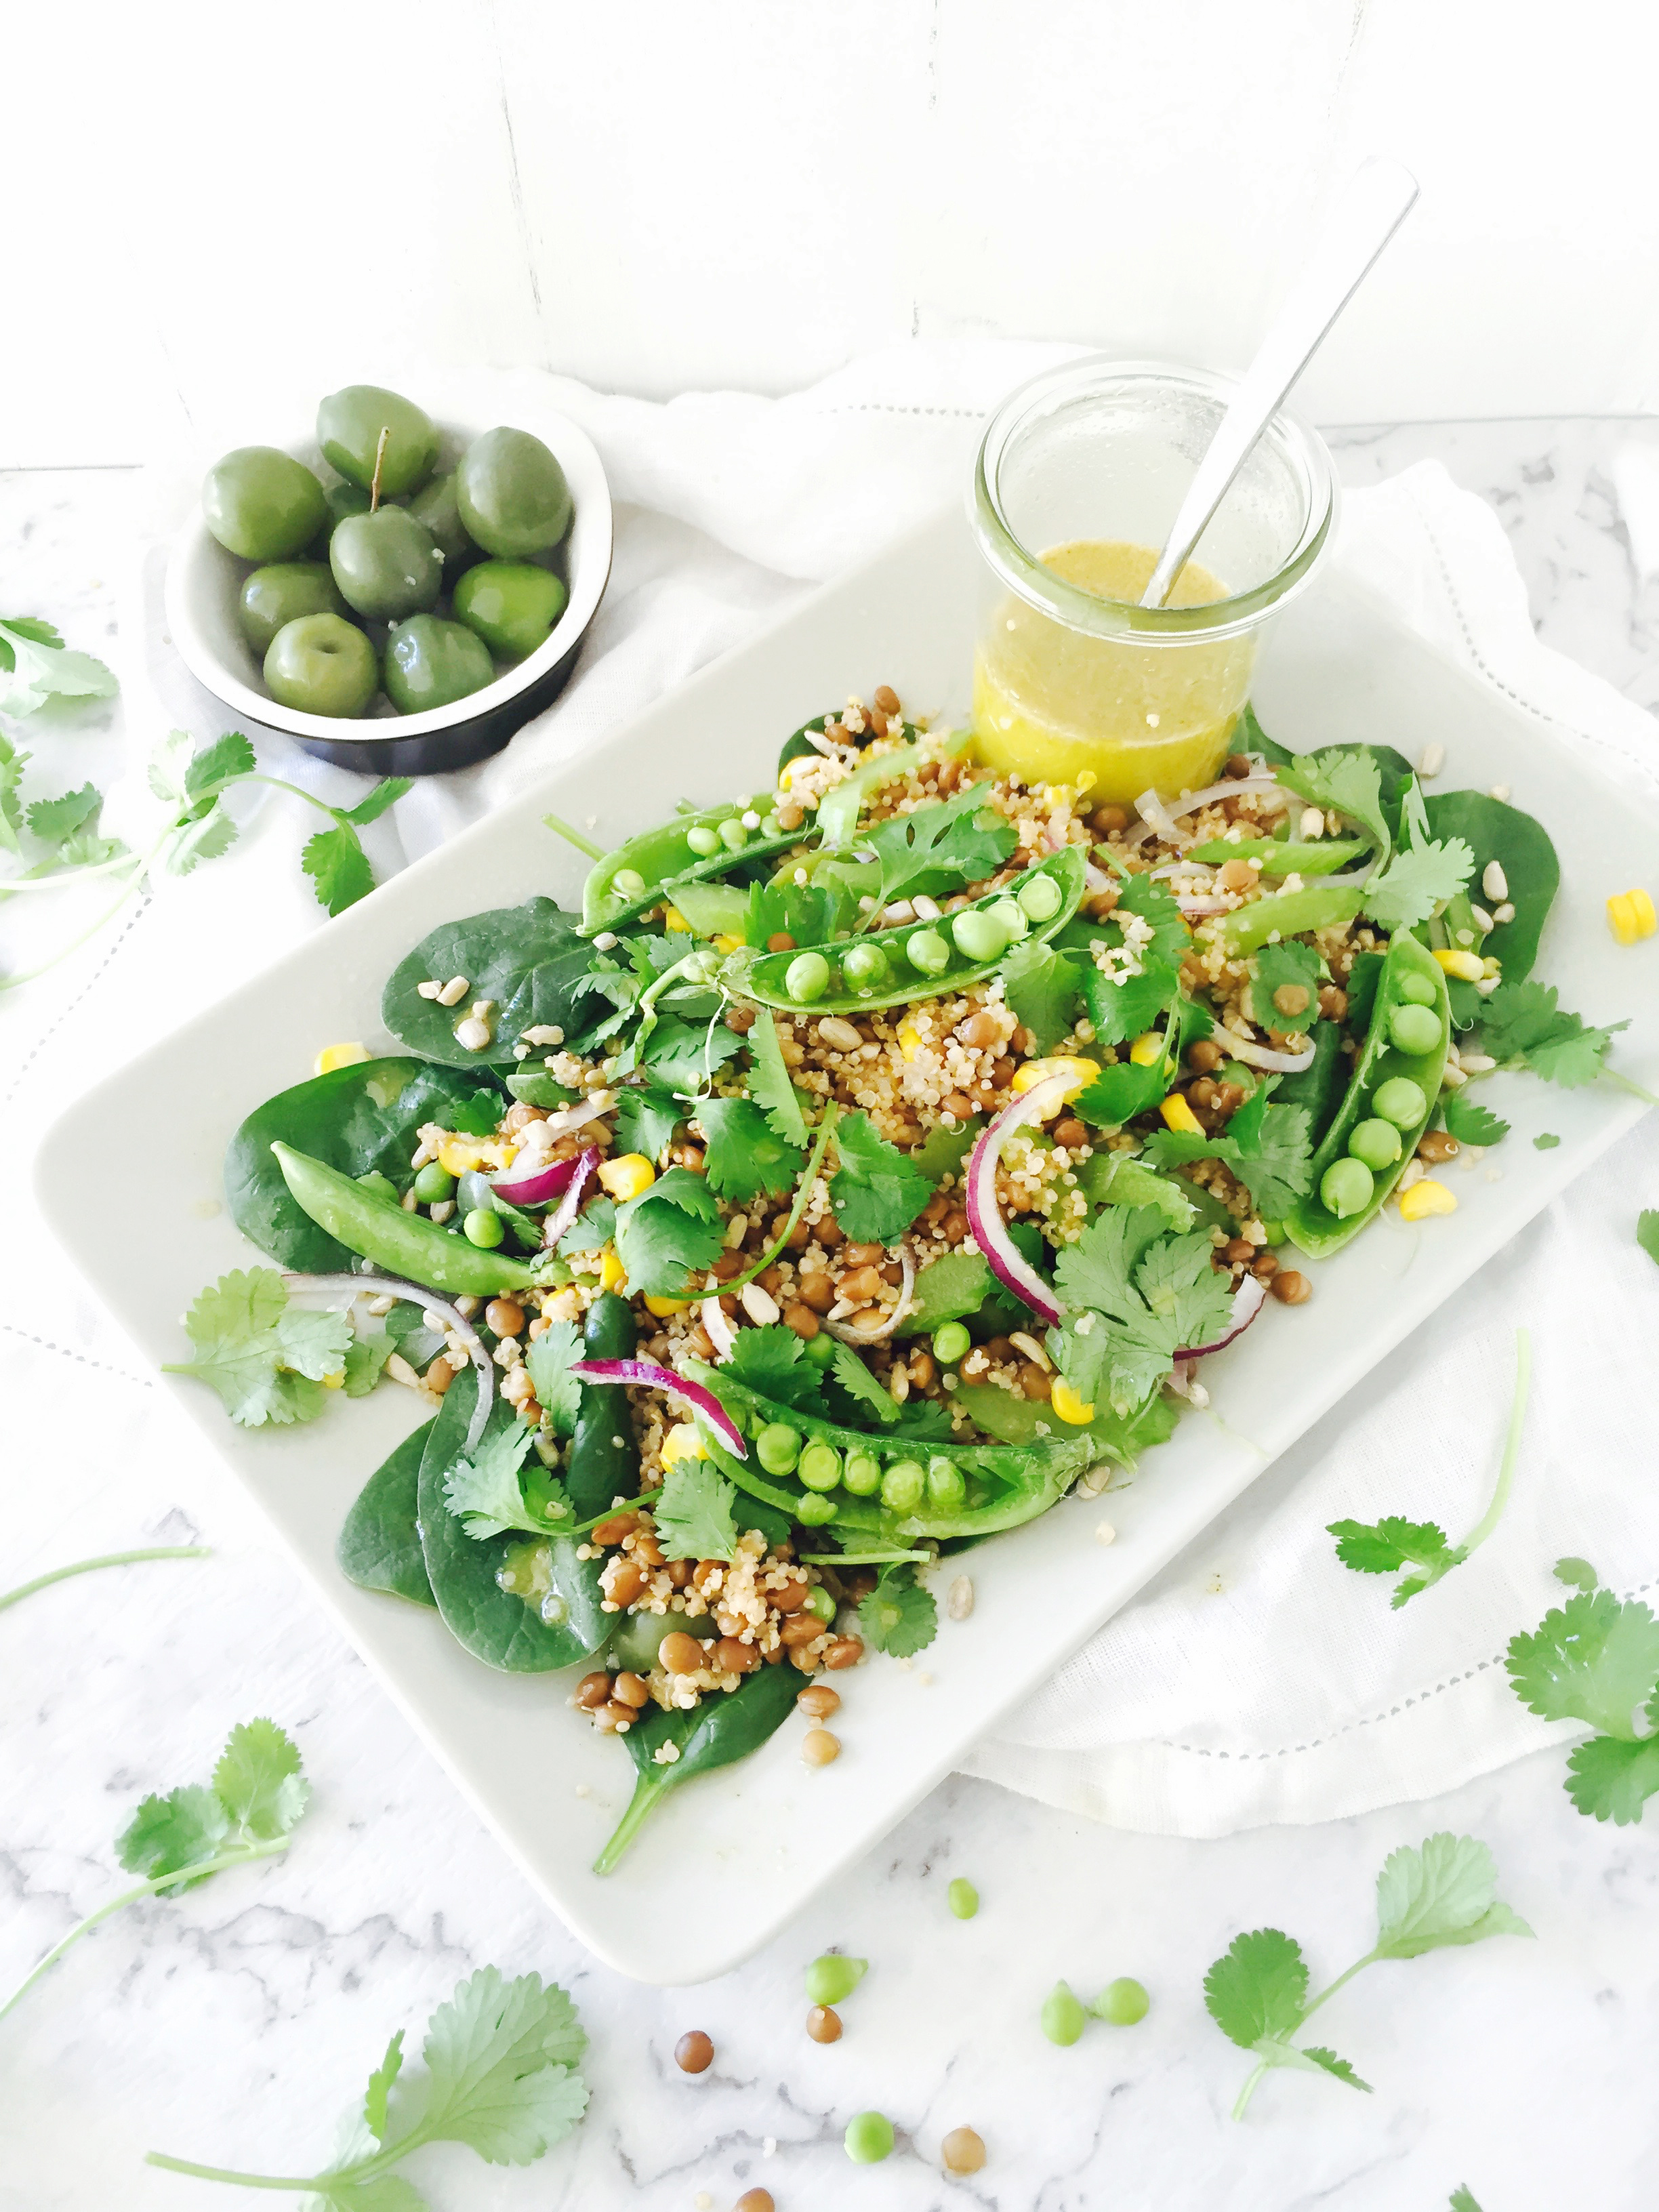 Meal In A Bowl Plant Protein Salad.jpg